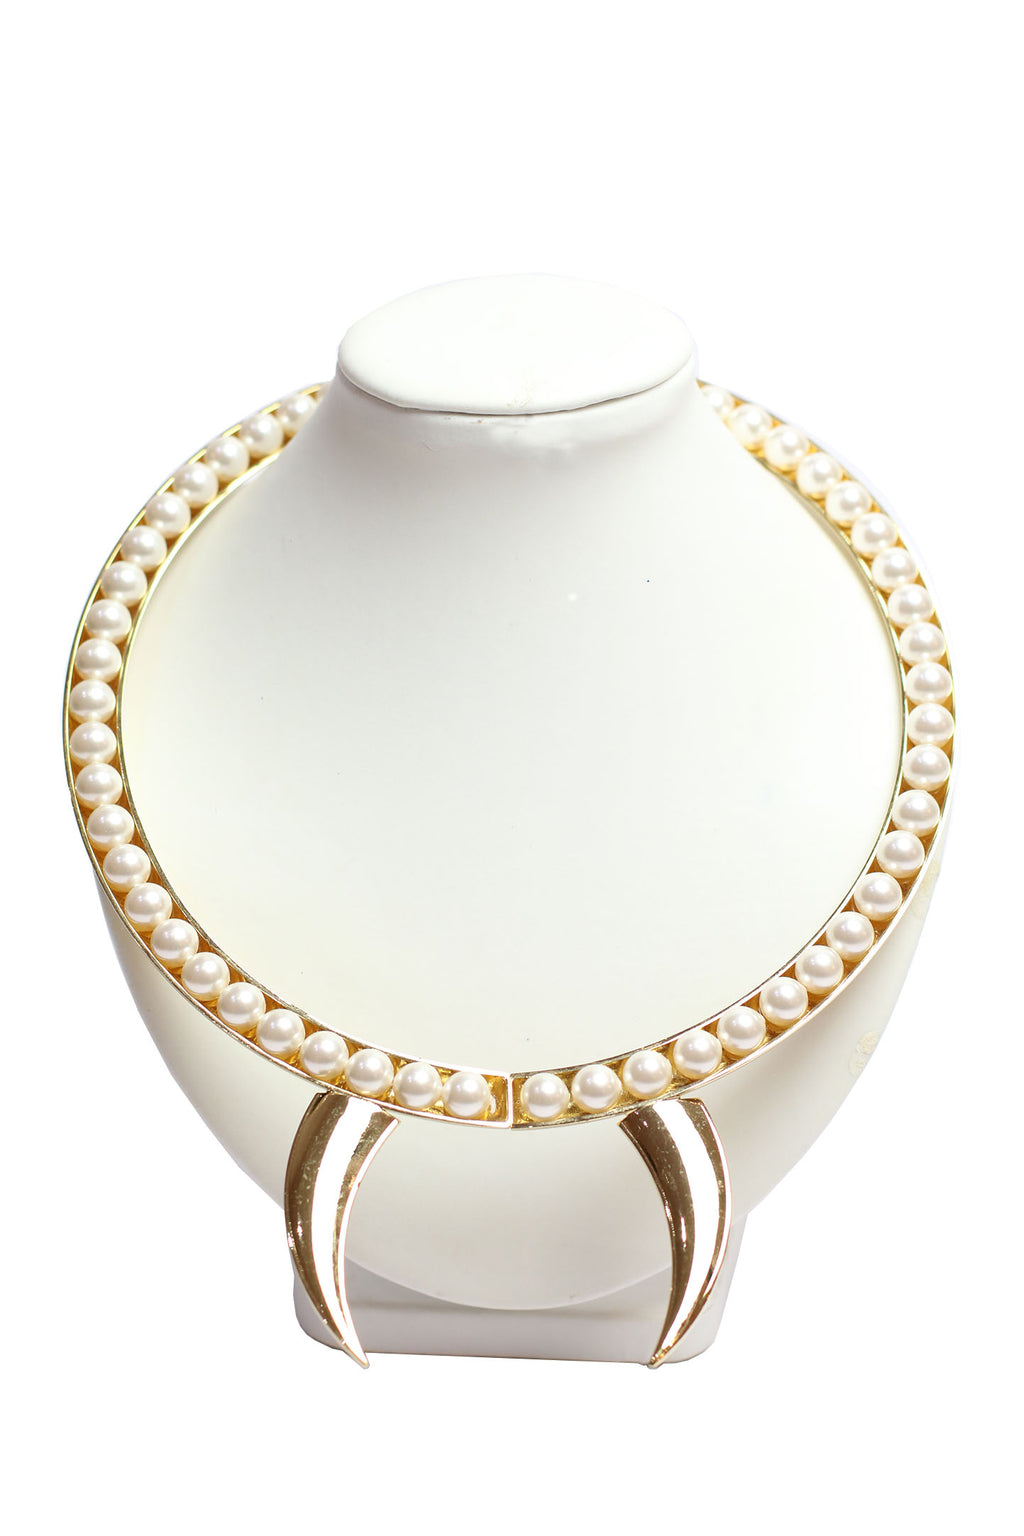 Maryam Keyhani - Curved pointed horn with pearls